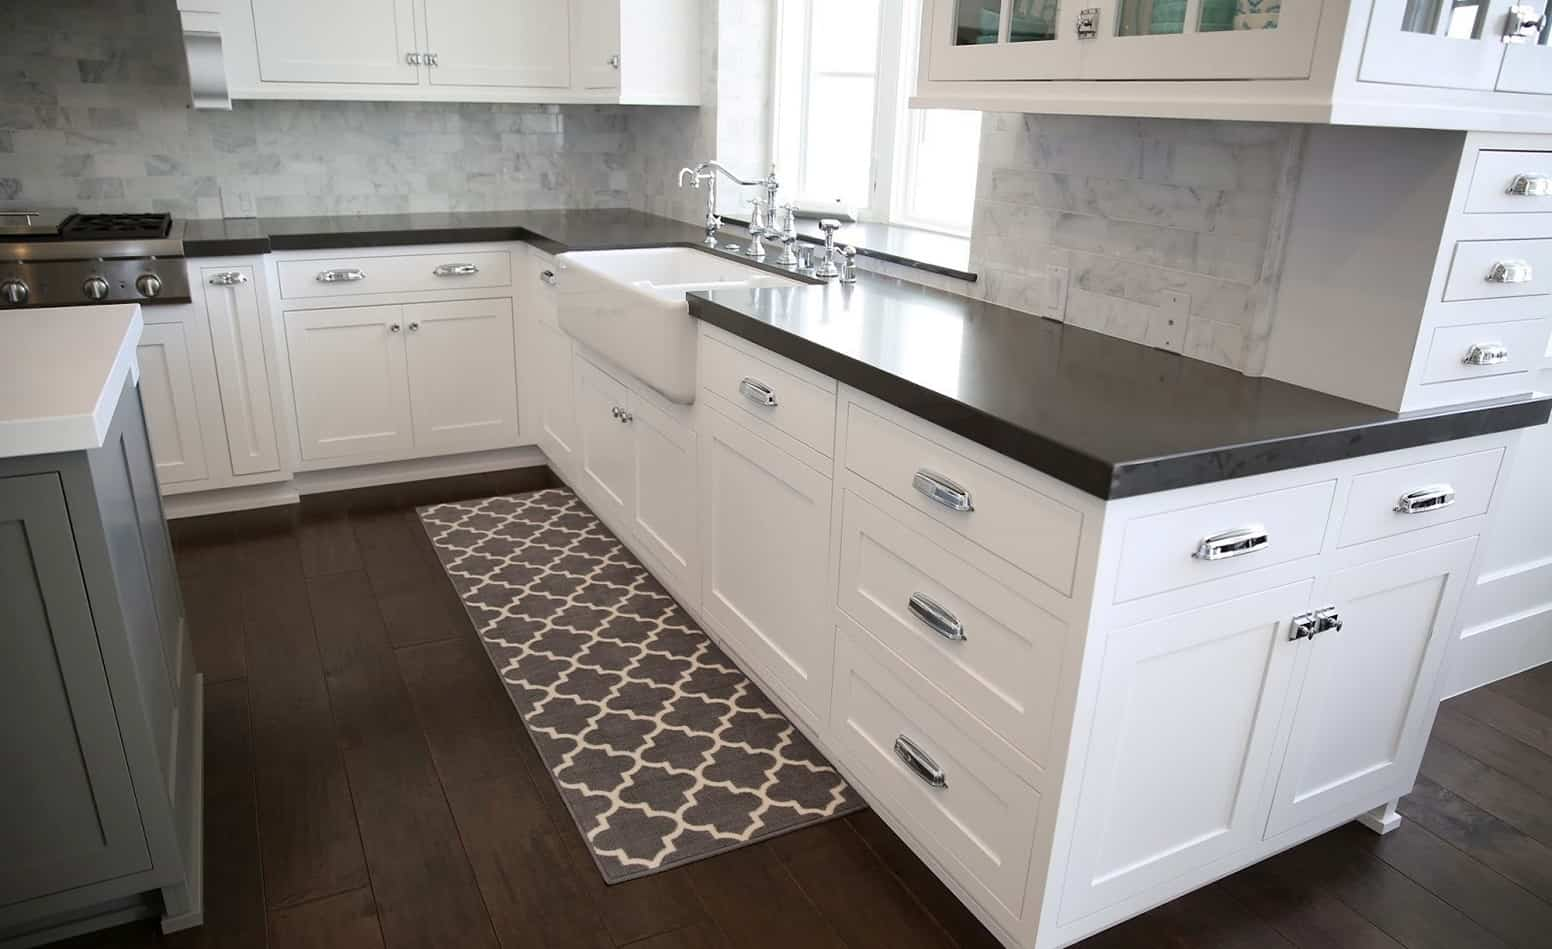 rugs for kitchen blanco faucet statement that add texture view in gallery with rug